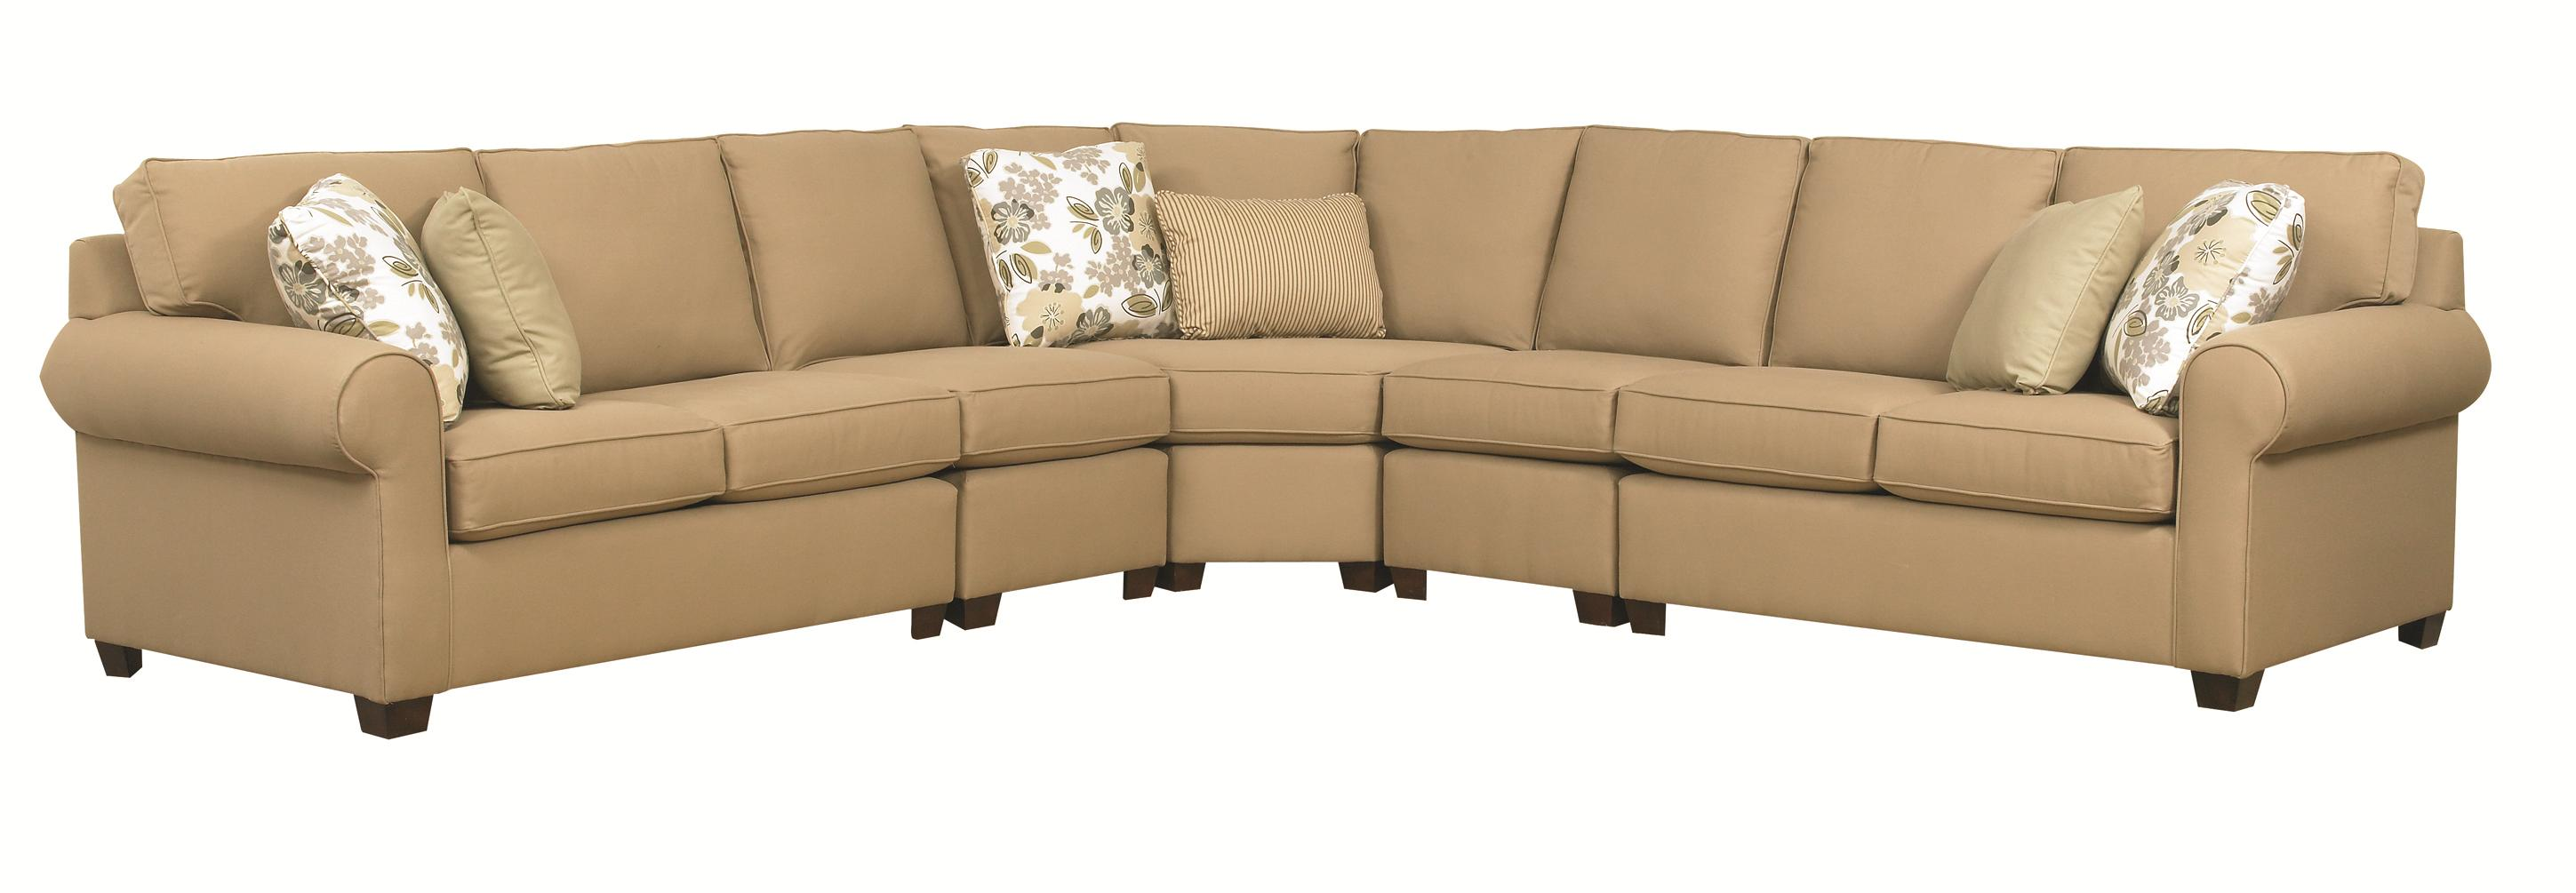 Kincaid Furniture Brannon Five Piece Sectional Sofa with Rolled Arms ...